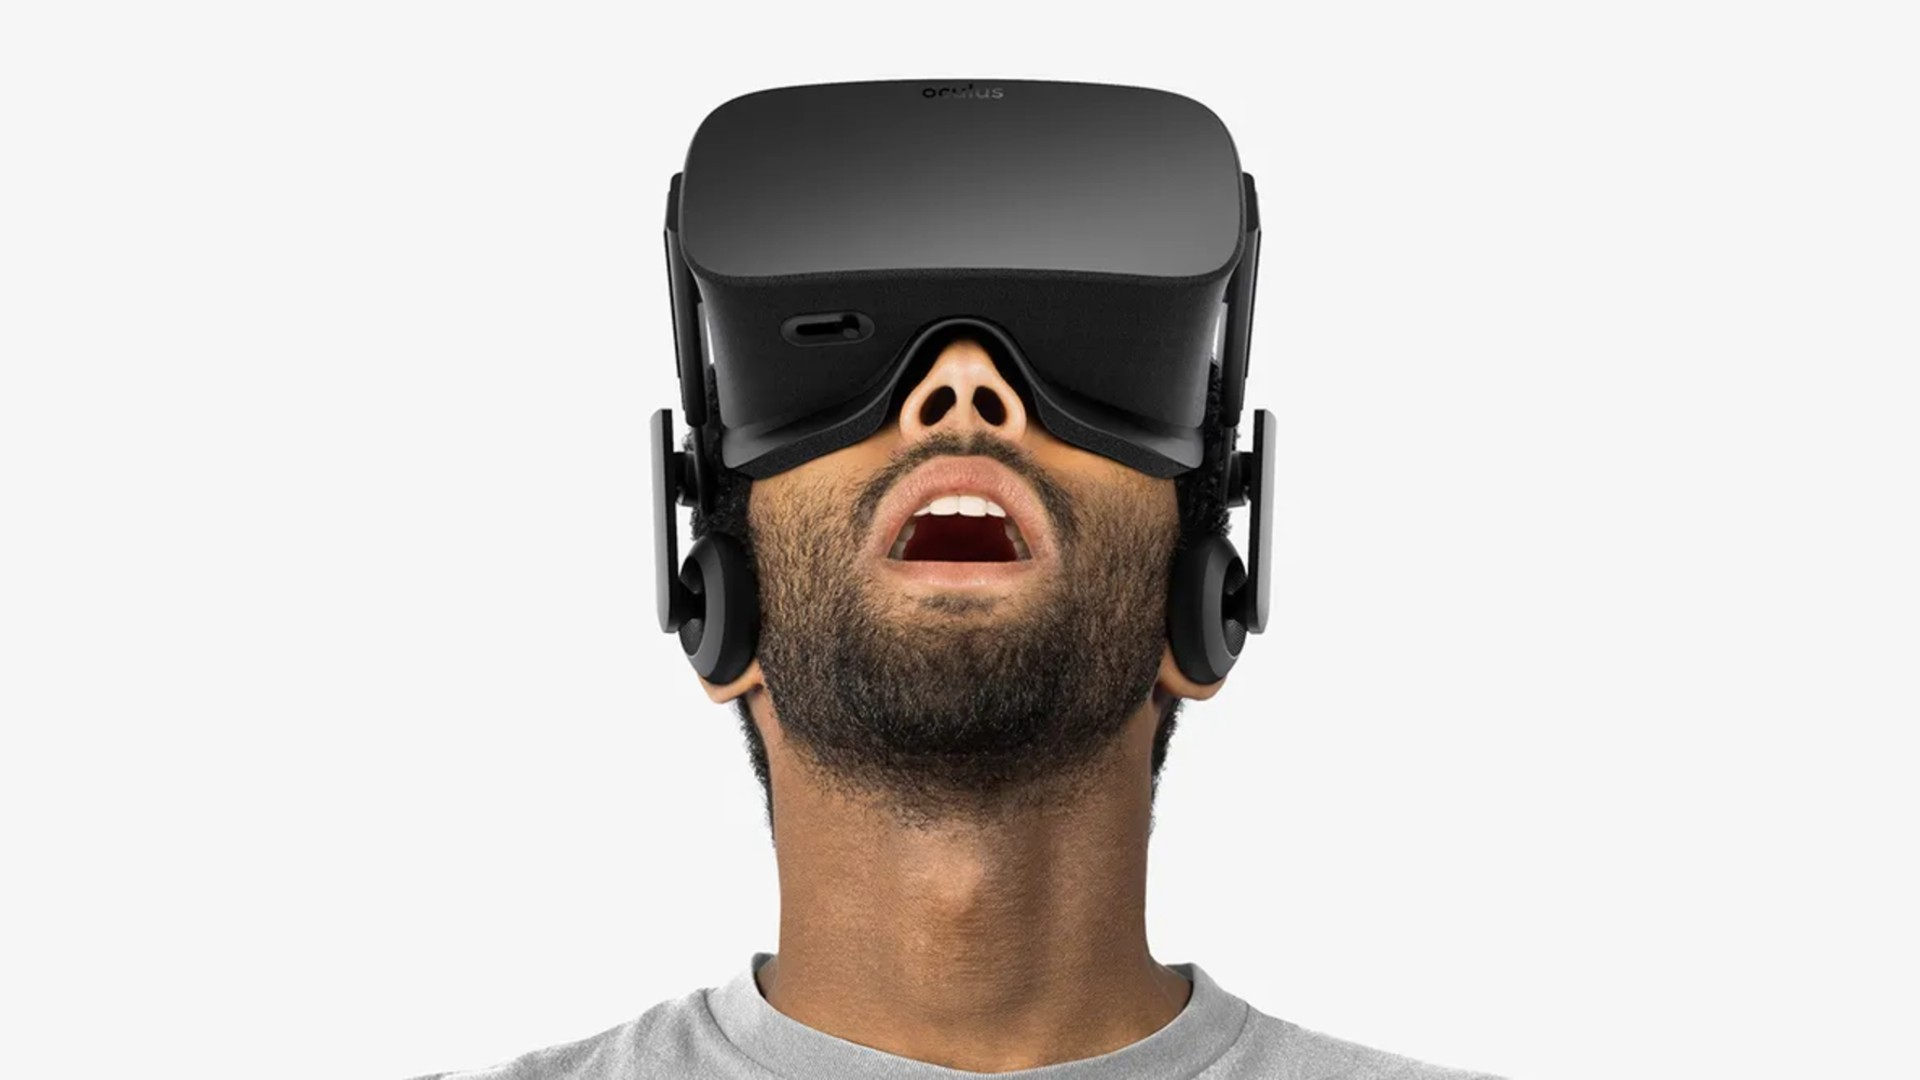 Facebook puts ads inside Oculus Quest VR headsets for the full gaming PC experience